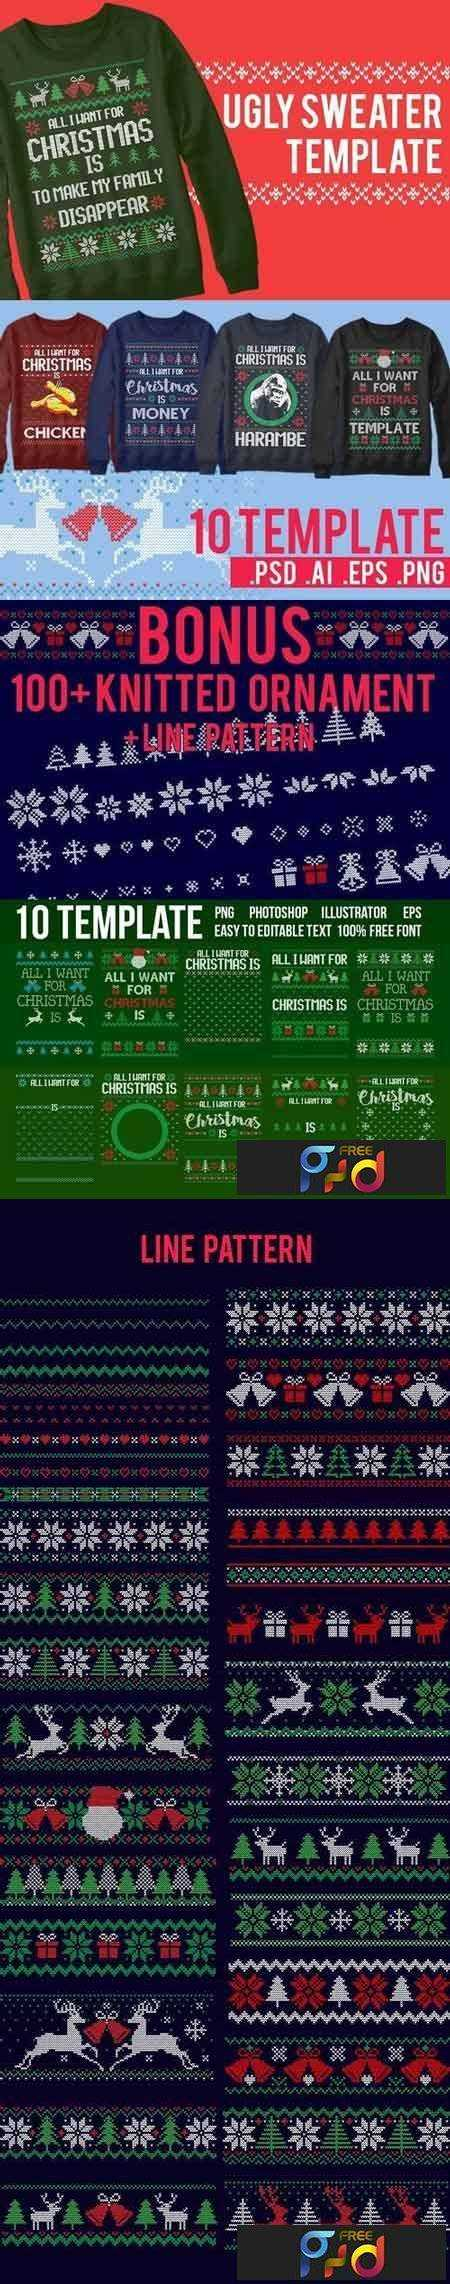 1709012 Ugly Sweater Templates 2000928 1